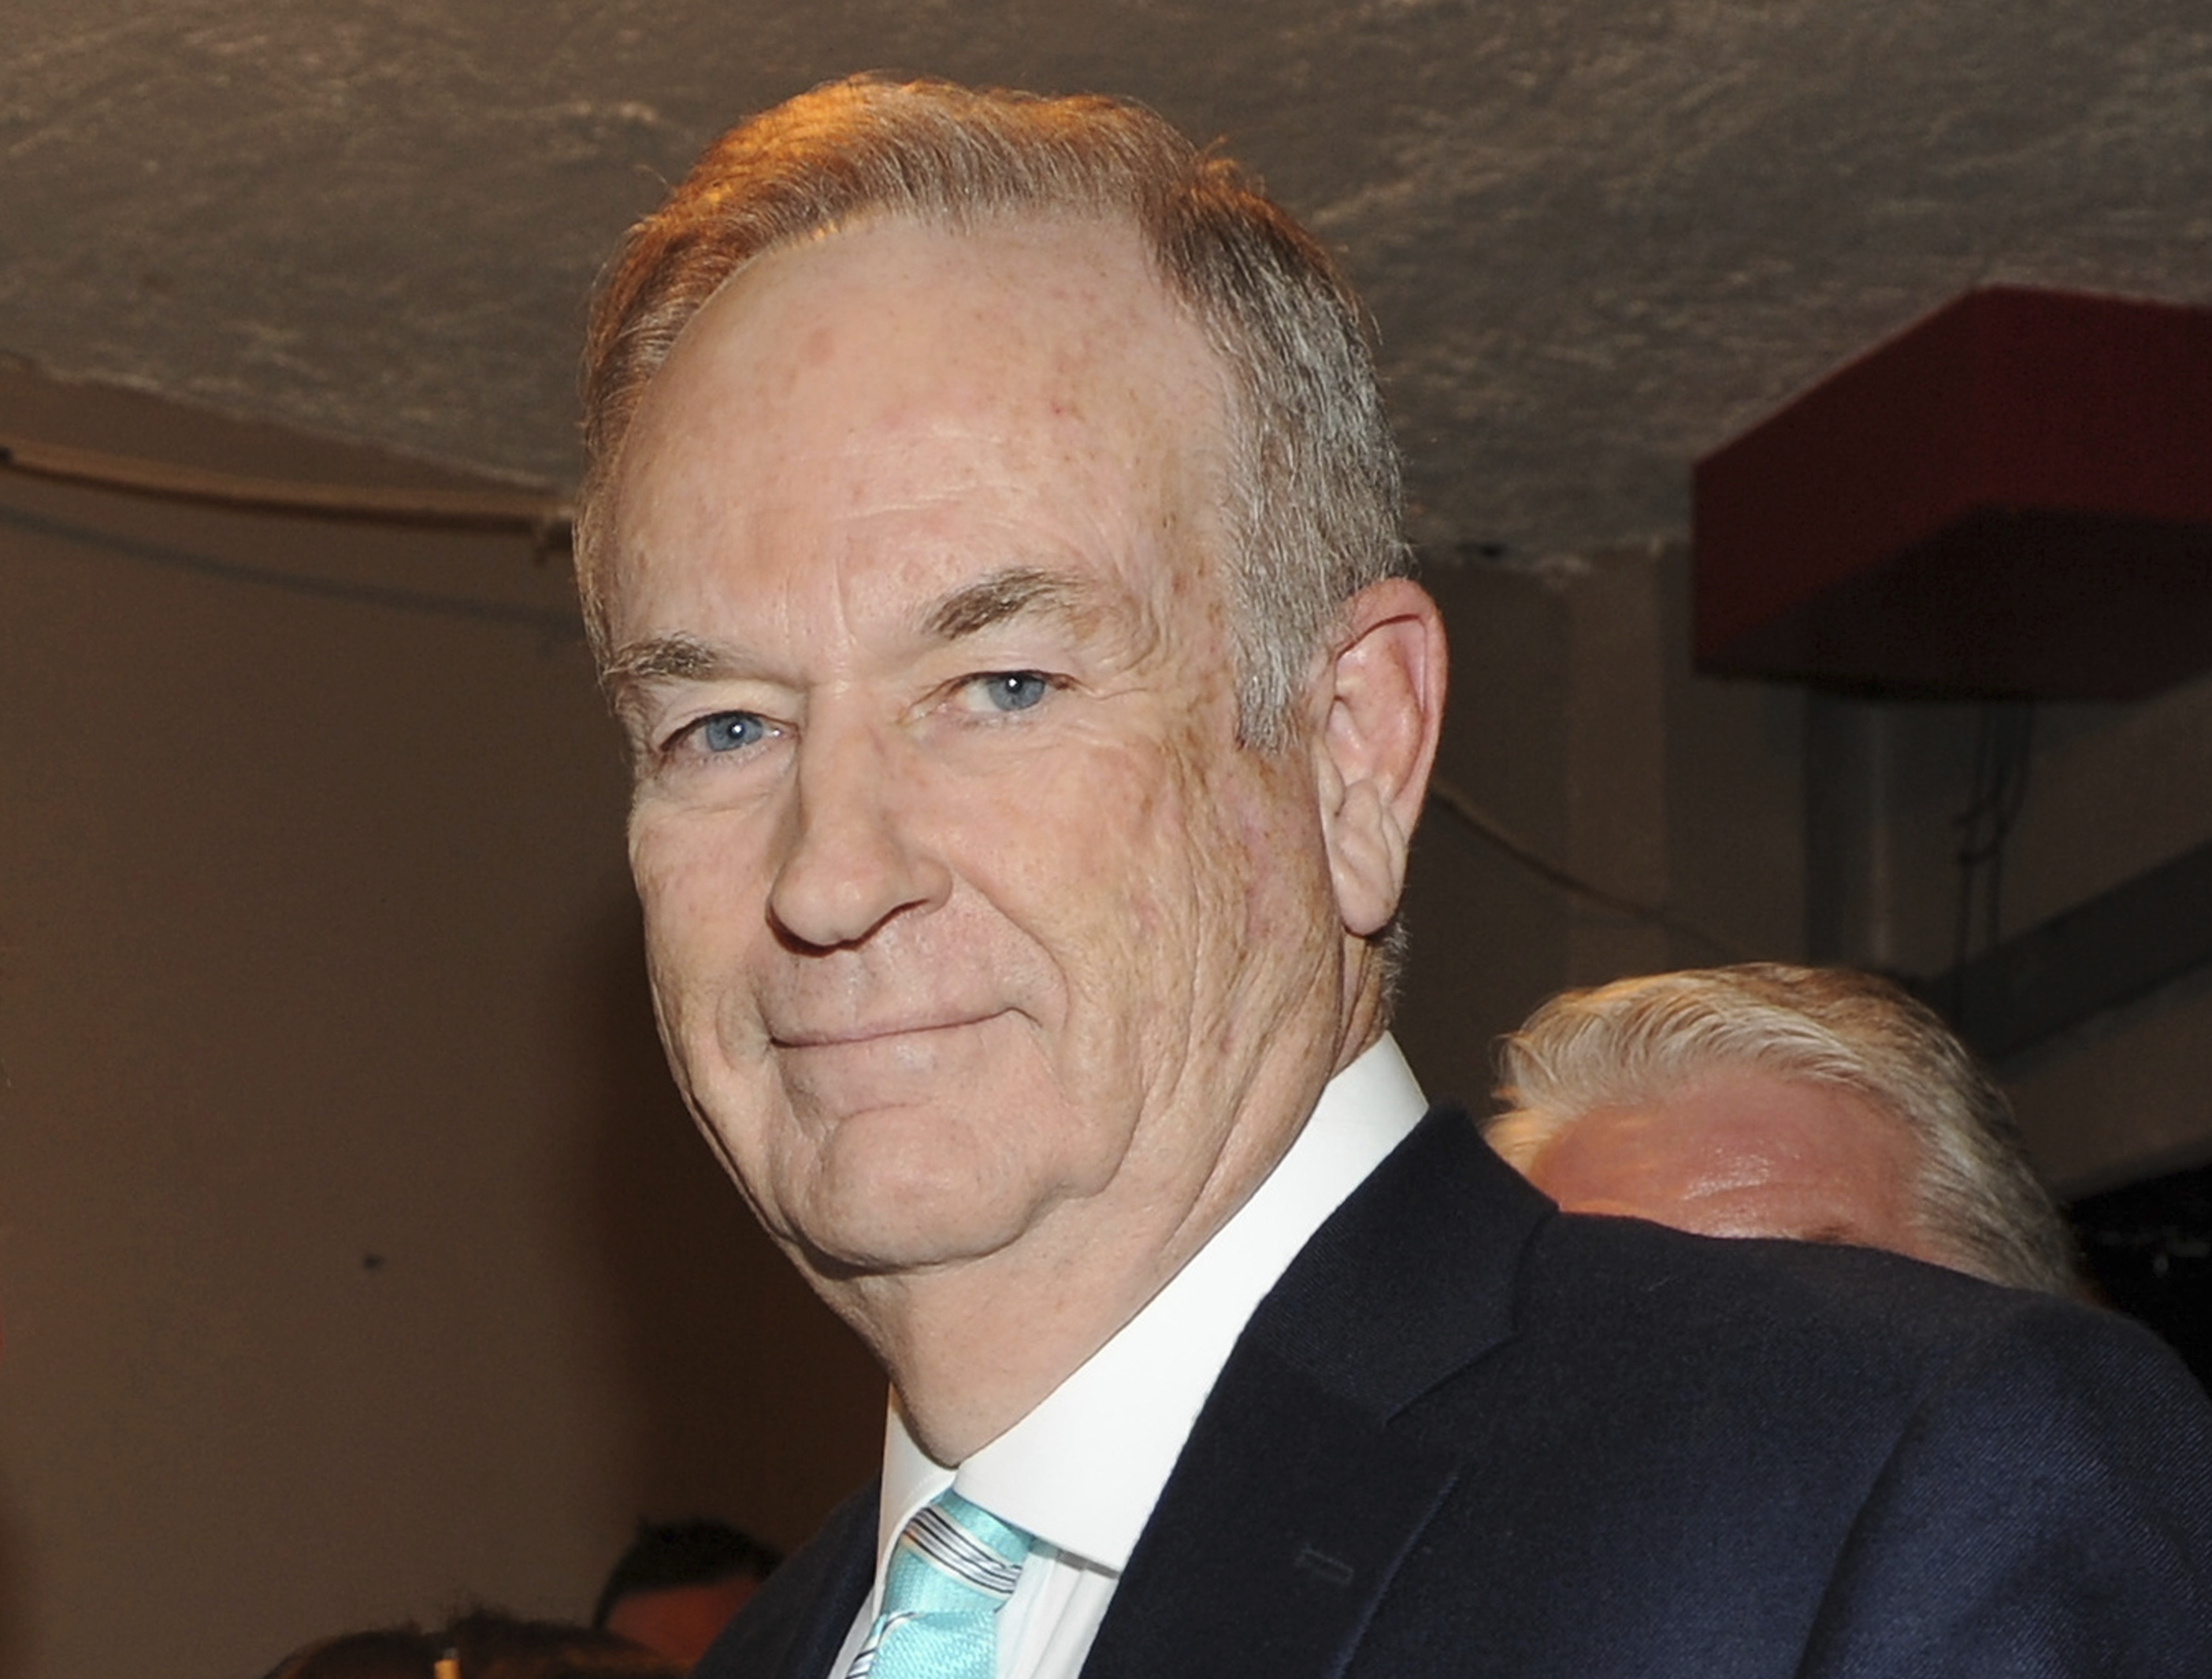 FILE - This Oct. 13, 2012 file photo shows Fox News commentator and author Bill O'Reilly at the Comedy Central &quo